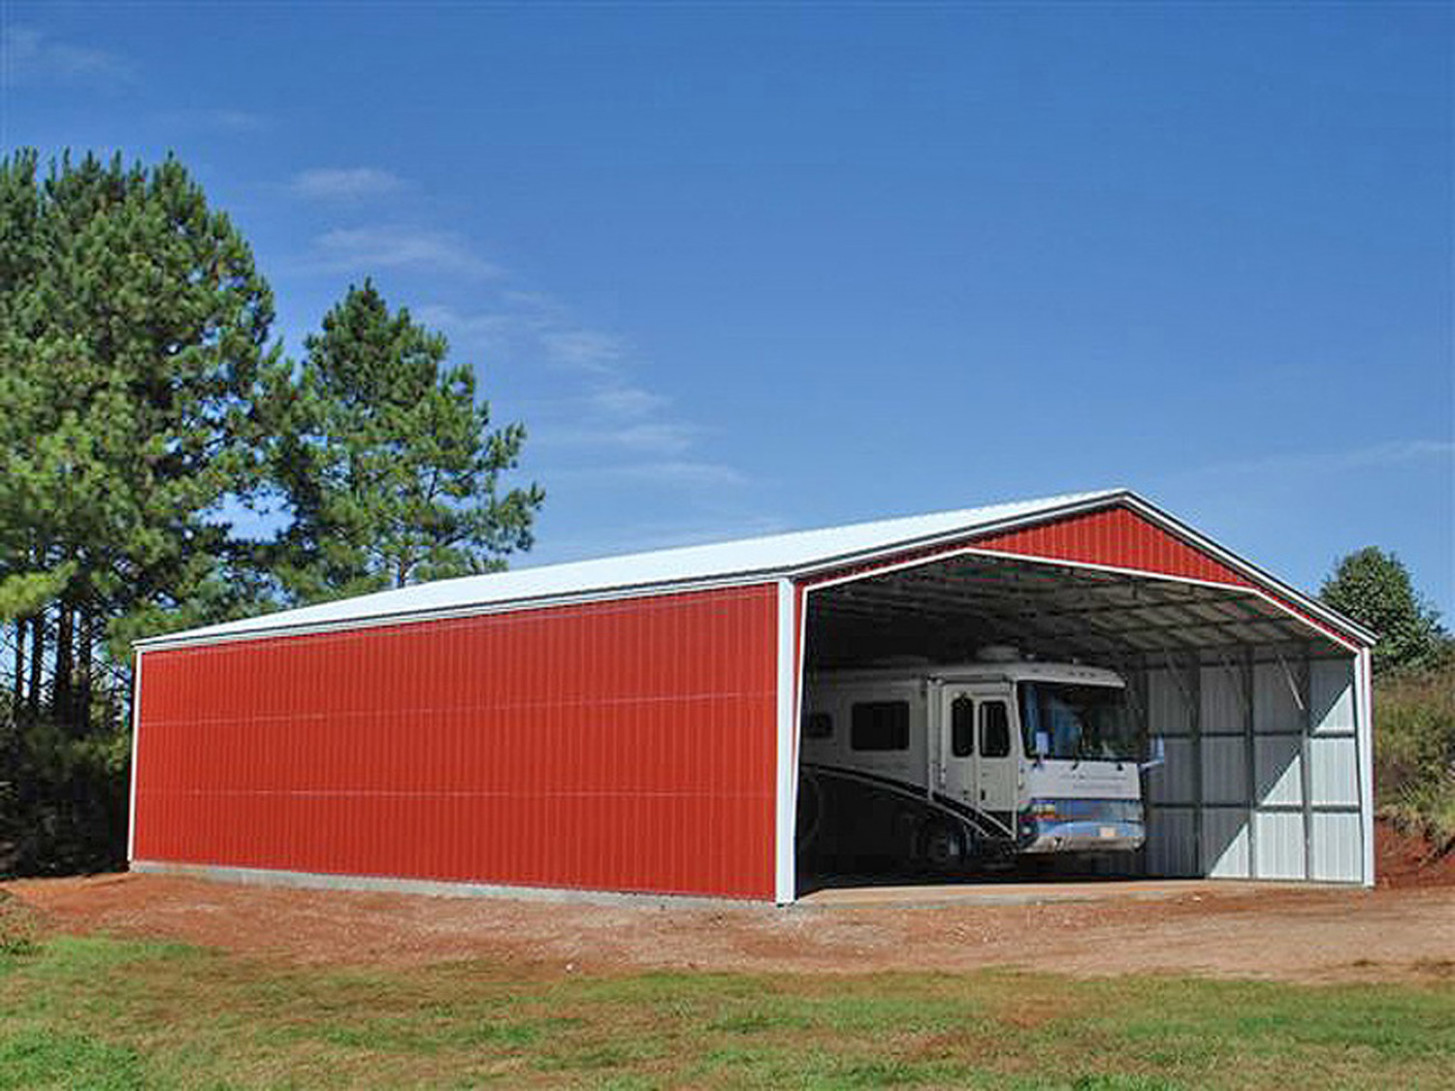 RV Storage Buildings, Metal RV Shelters Eversafe Buildings Metal Carport Garage Buildings